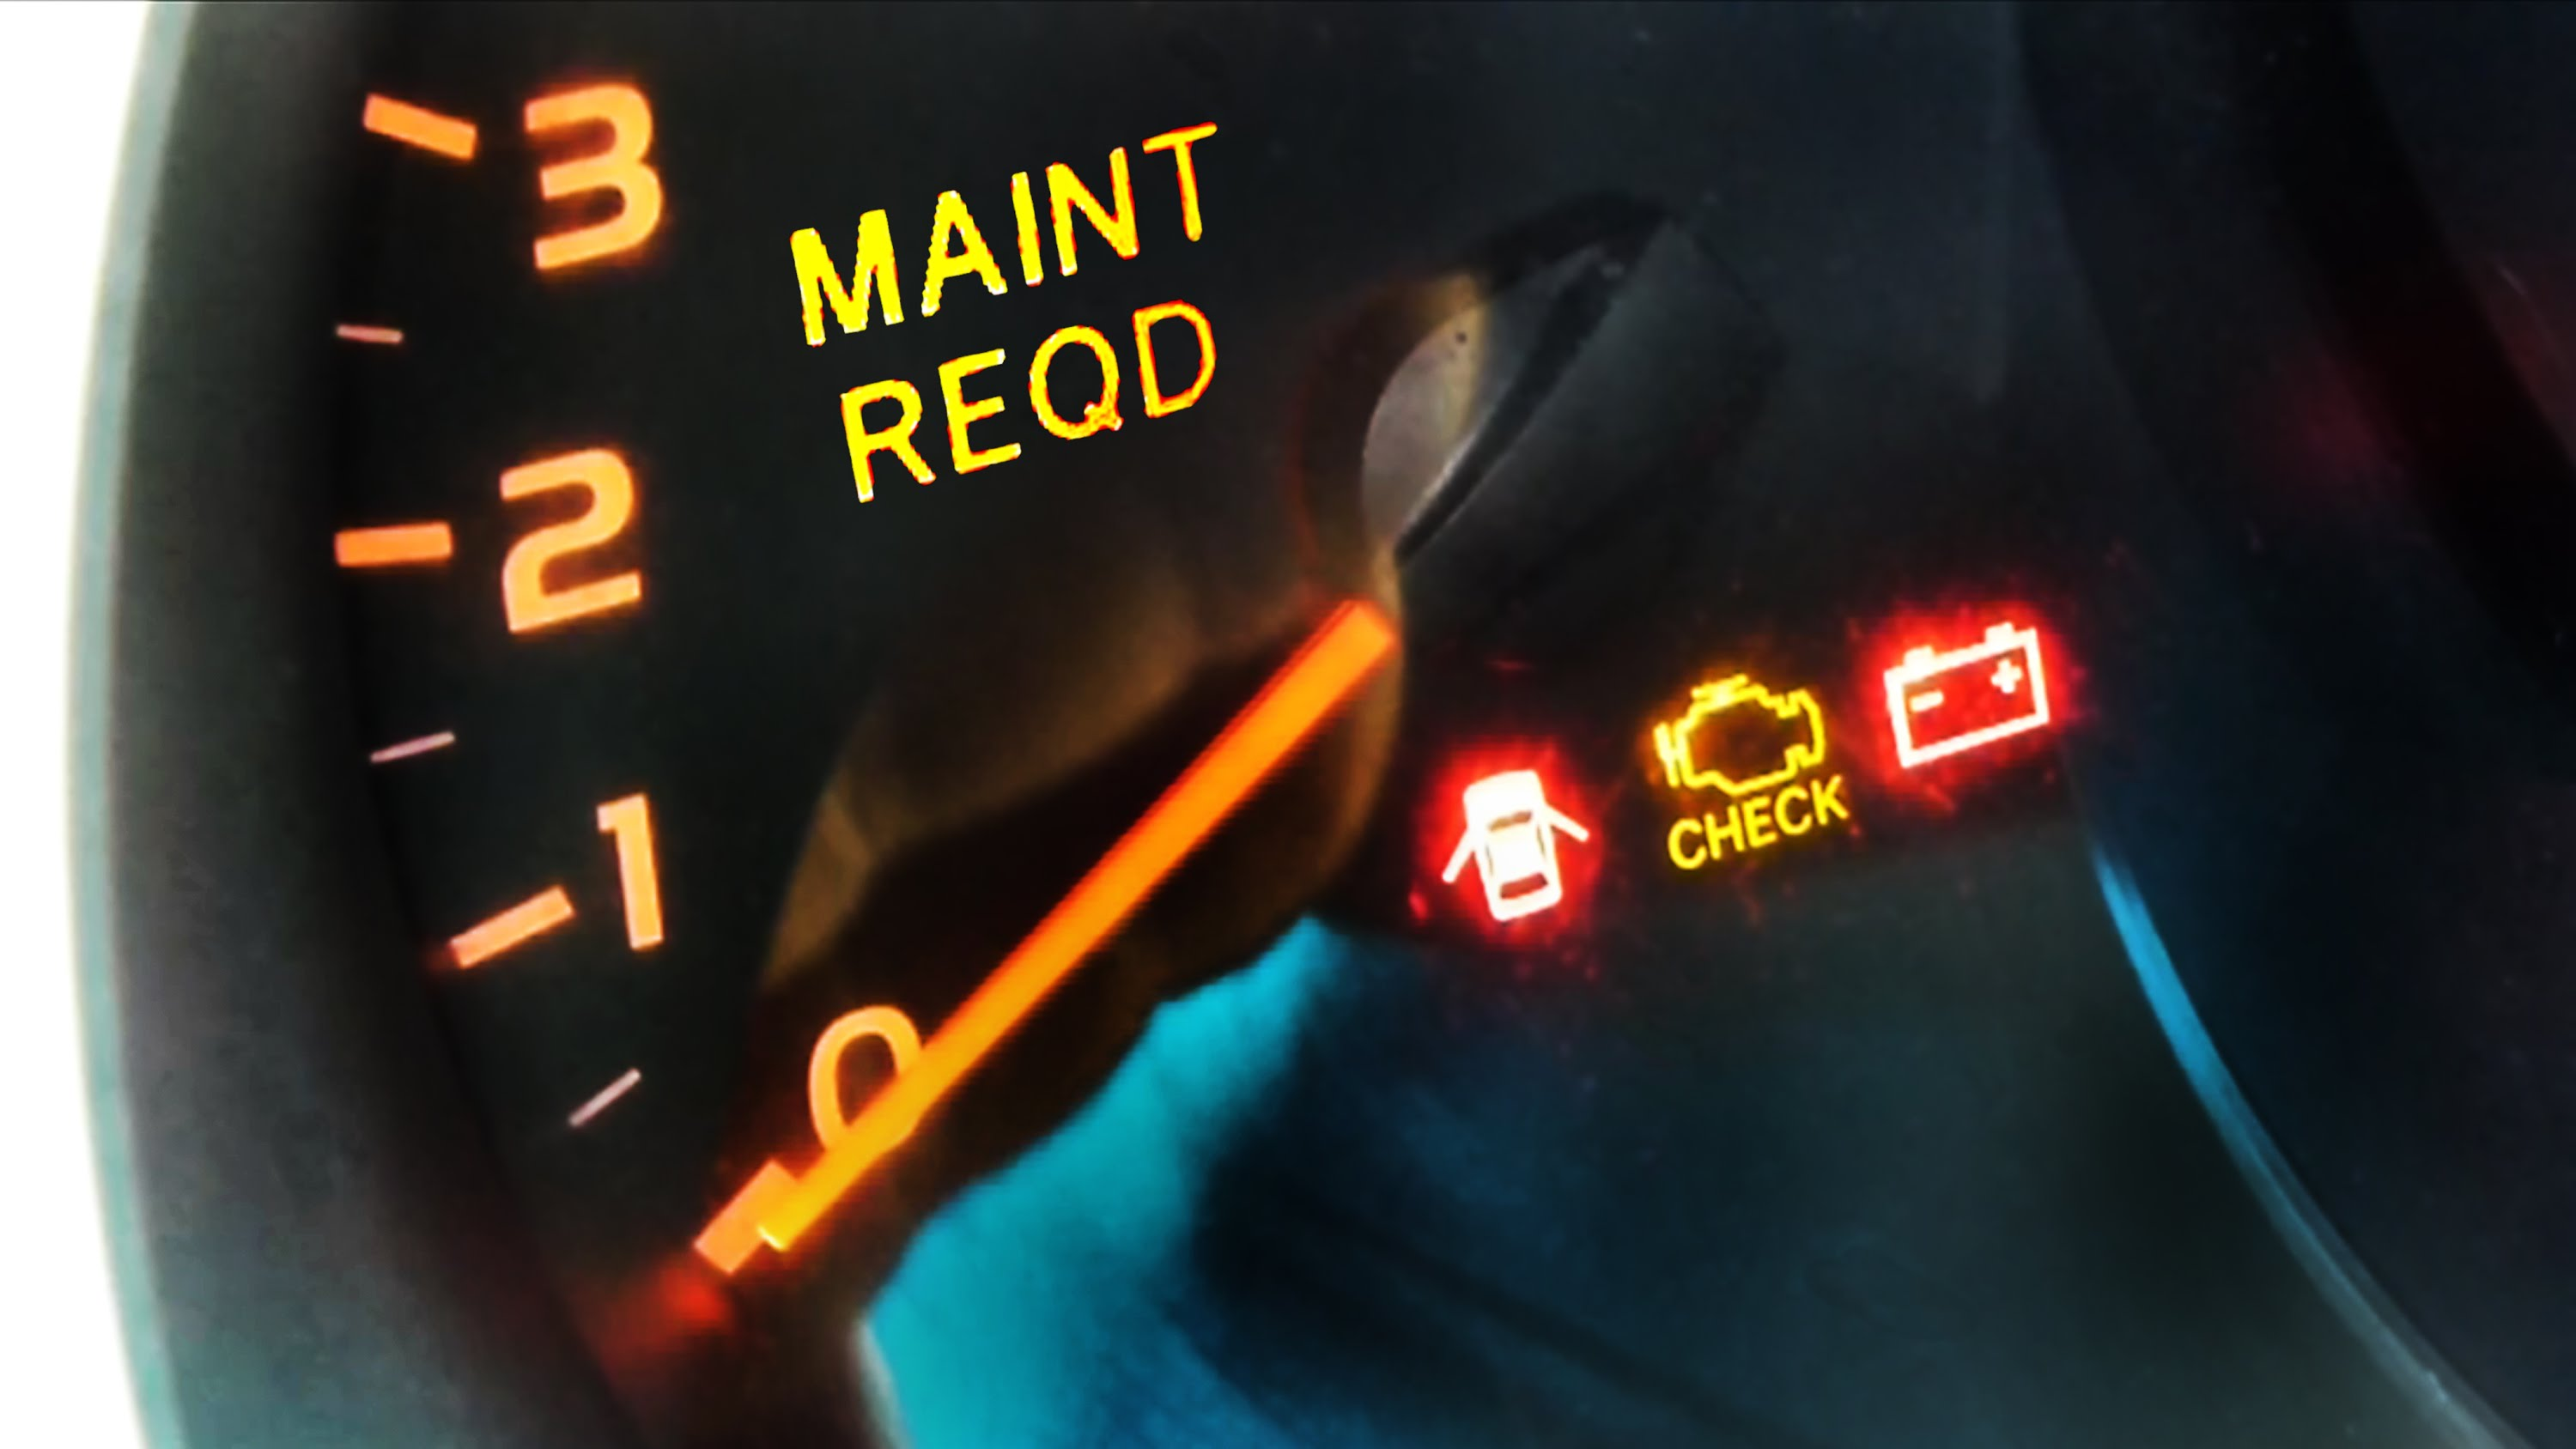 Image of Lexus dashboard showing Maintenance required light.